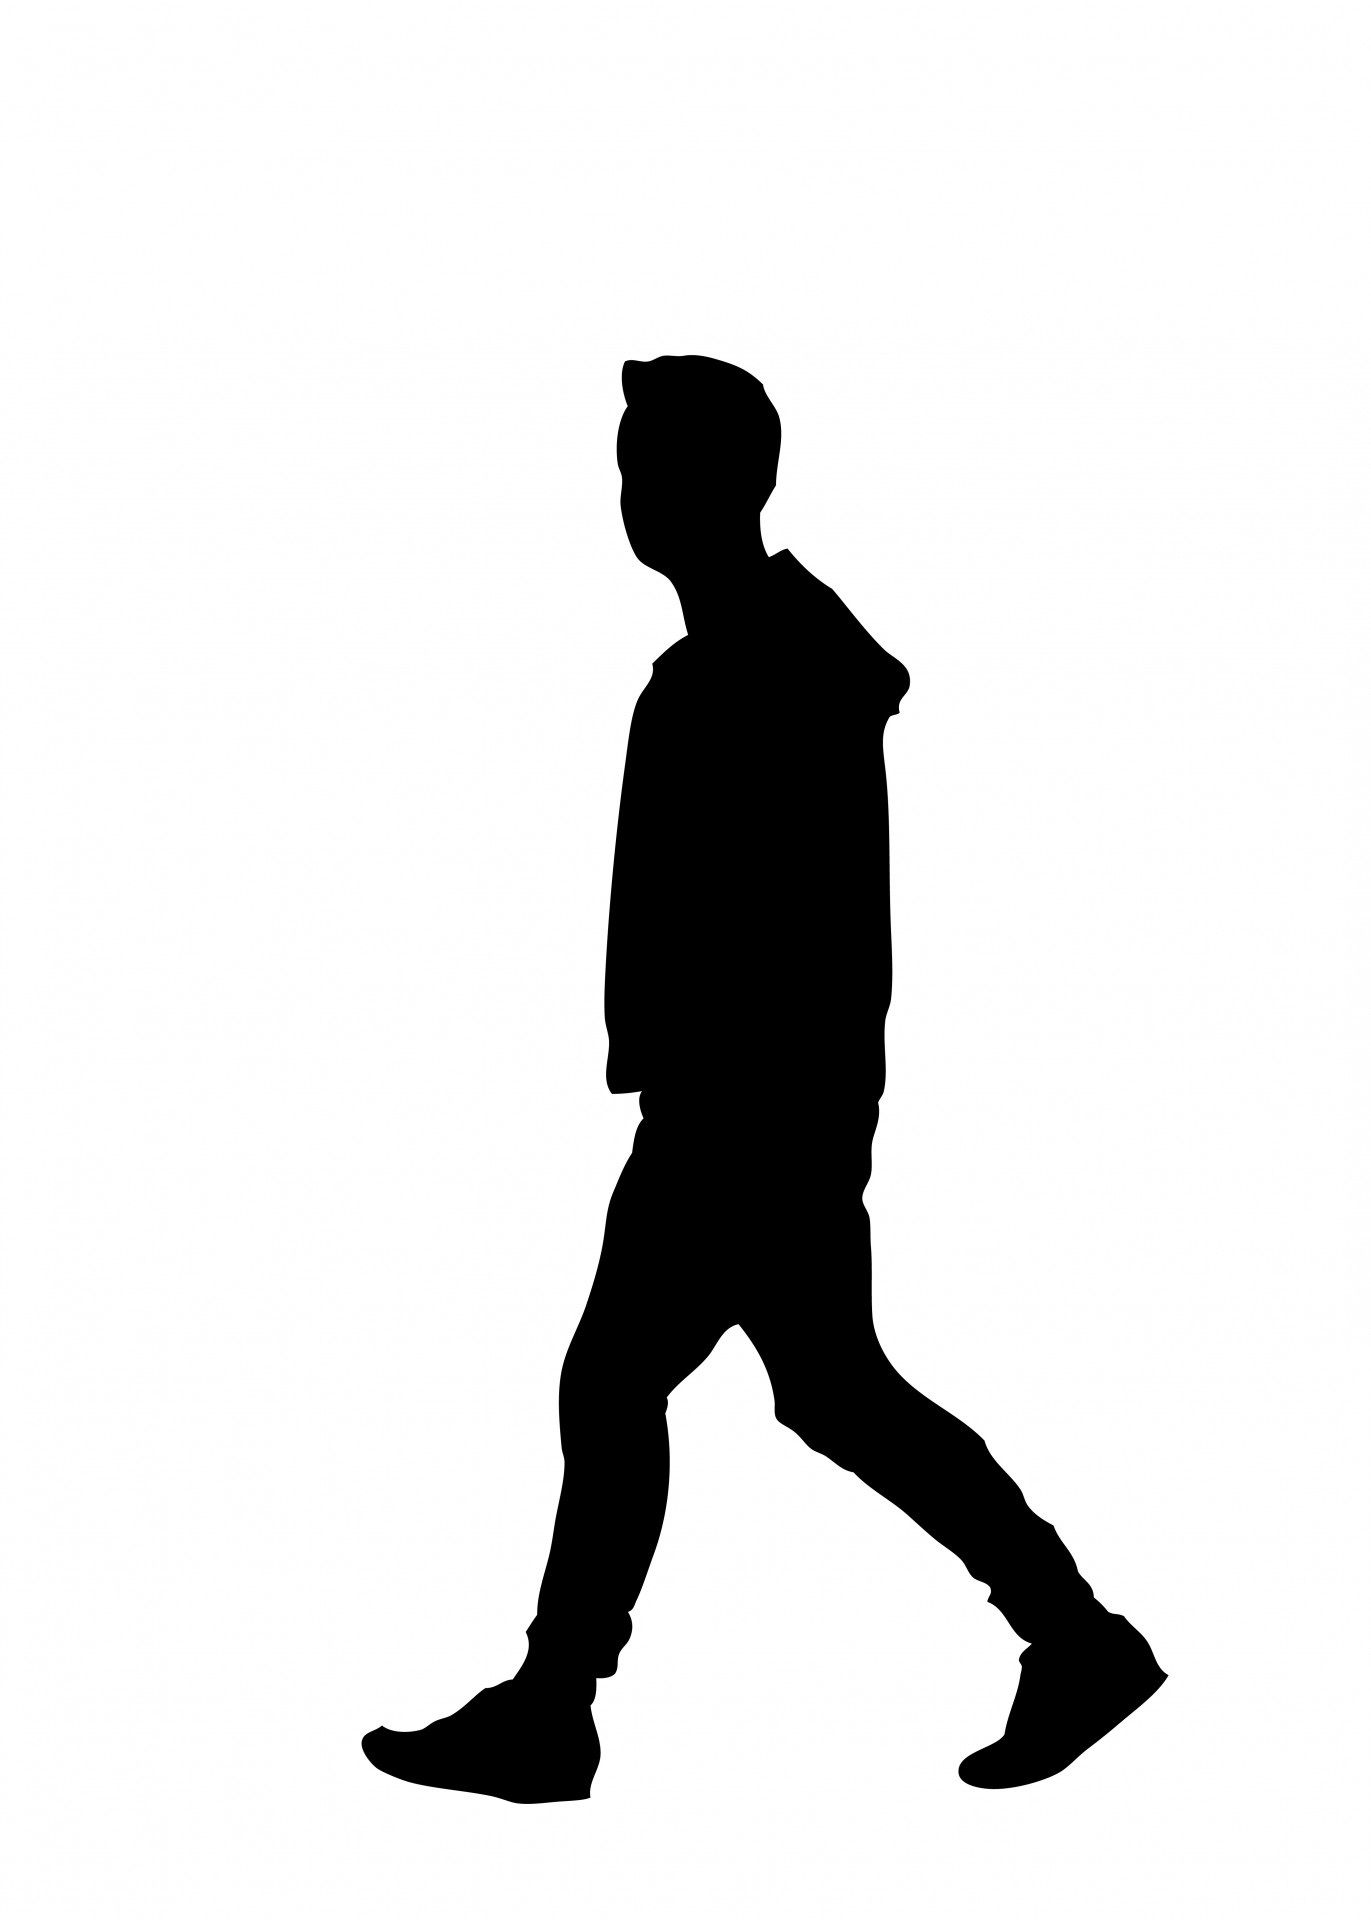 Man walking silhouette clipart picture freeuse library Pin by Lise Allen on Silhouette   Walking silhouette, Person ... picture freeuse library